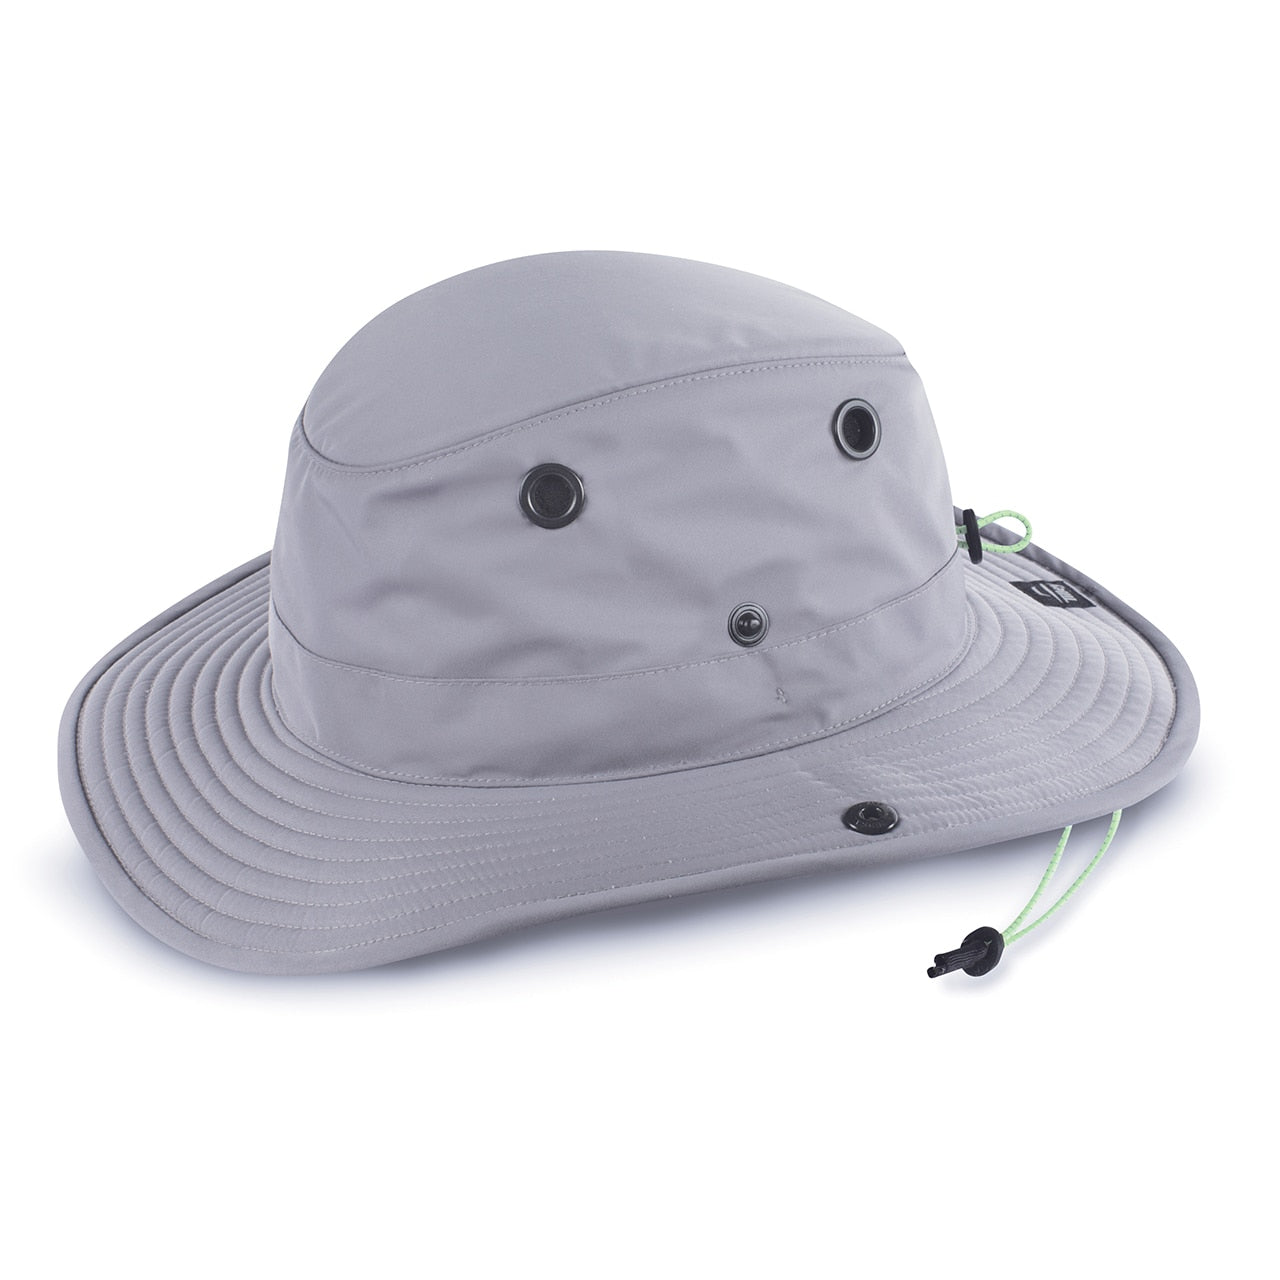 Tilley Paddler's Hat in Grey